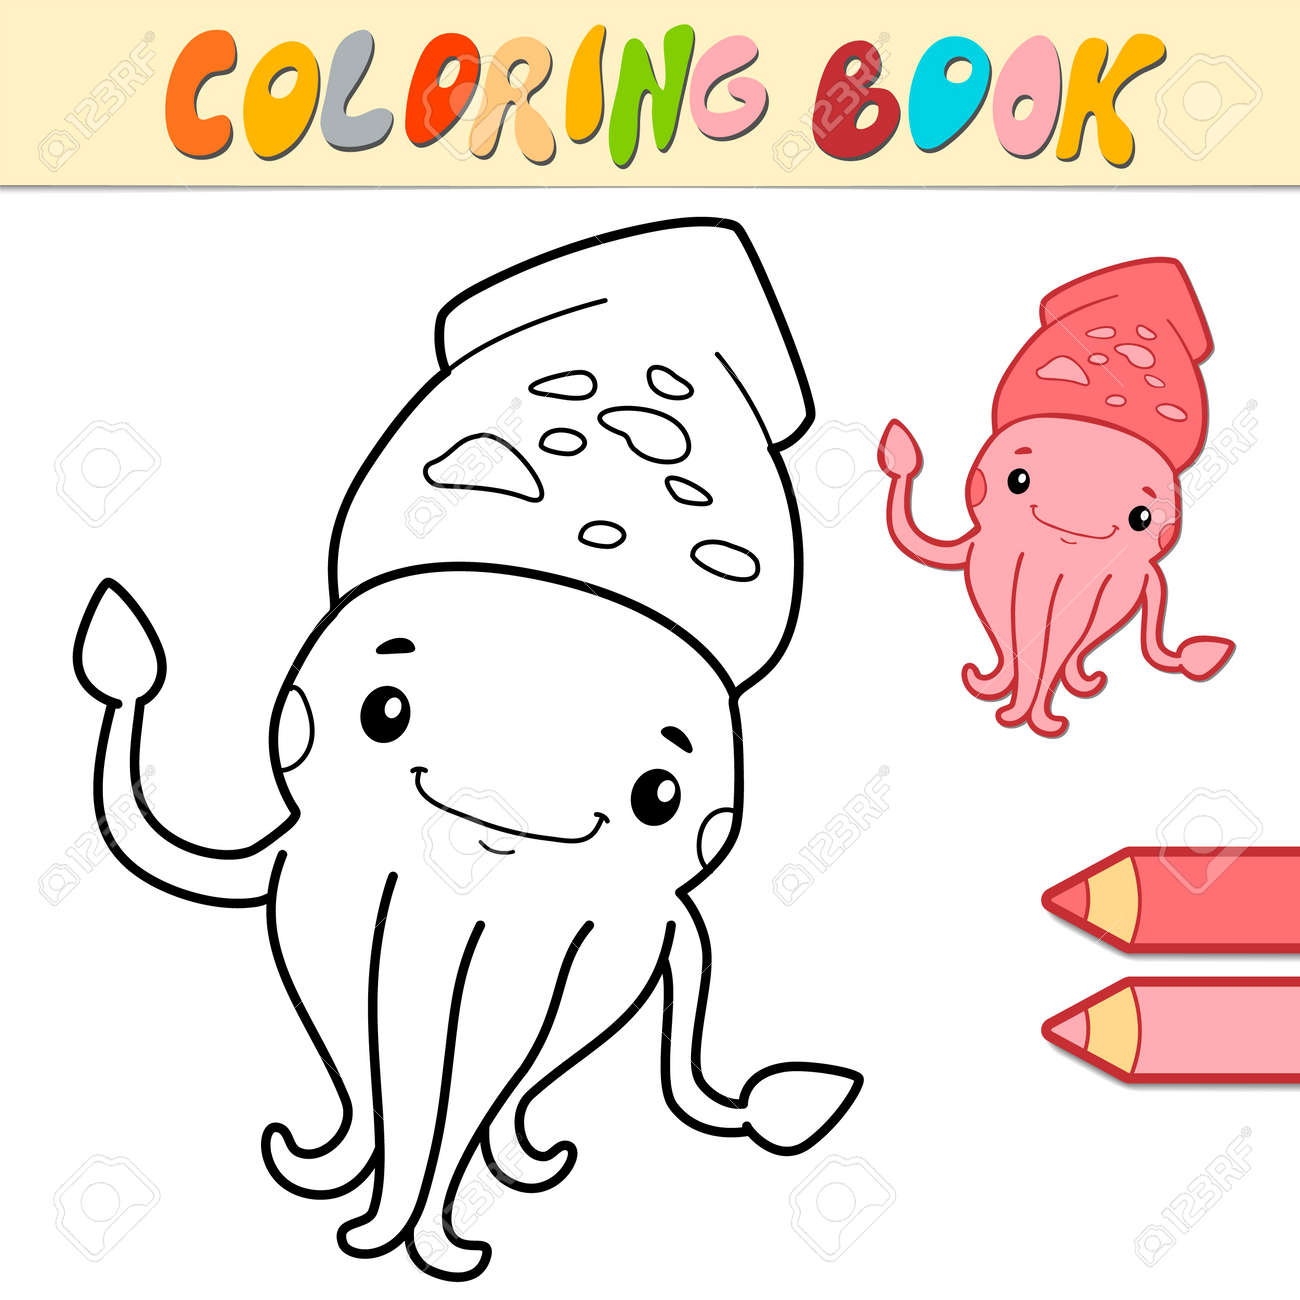 Coloring book or page for kids. squid black and white vector illustration - 168778513